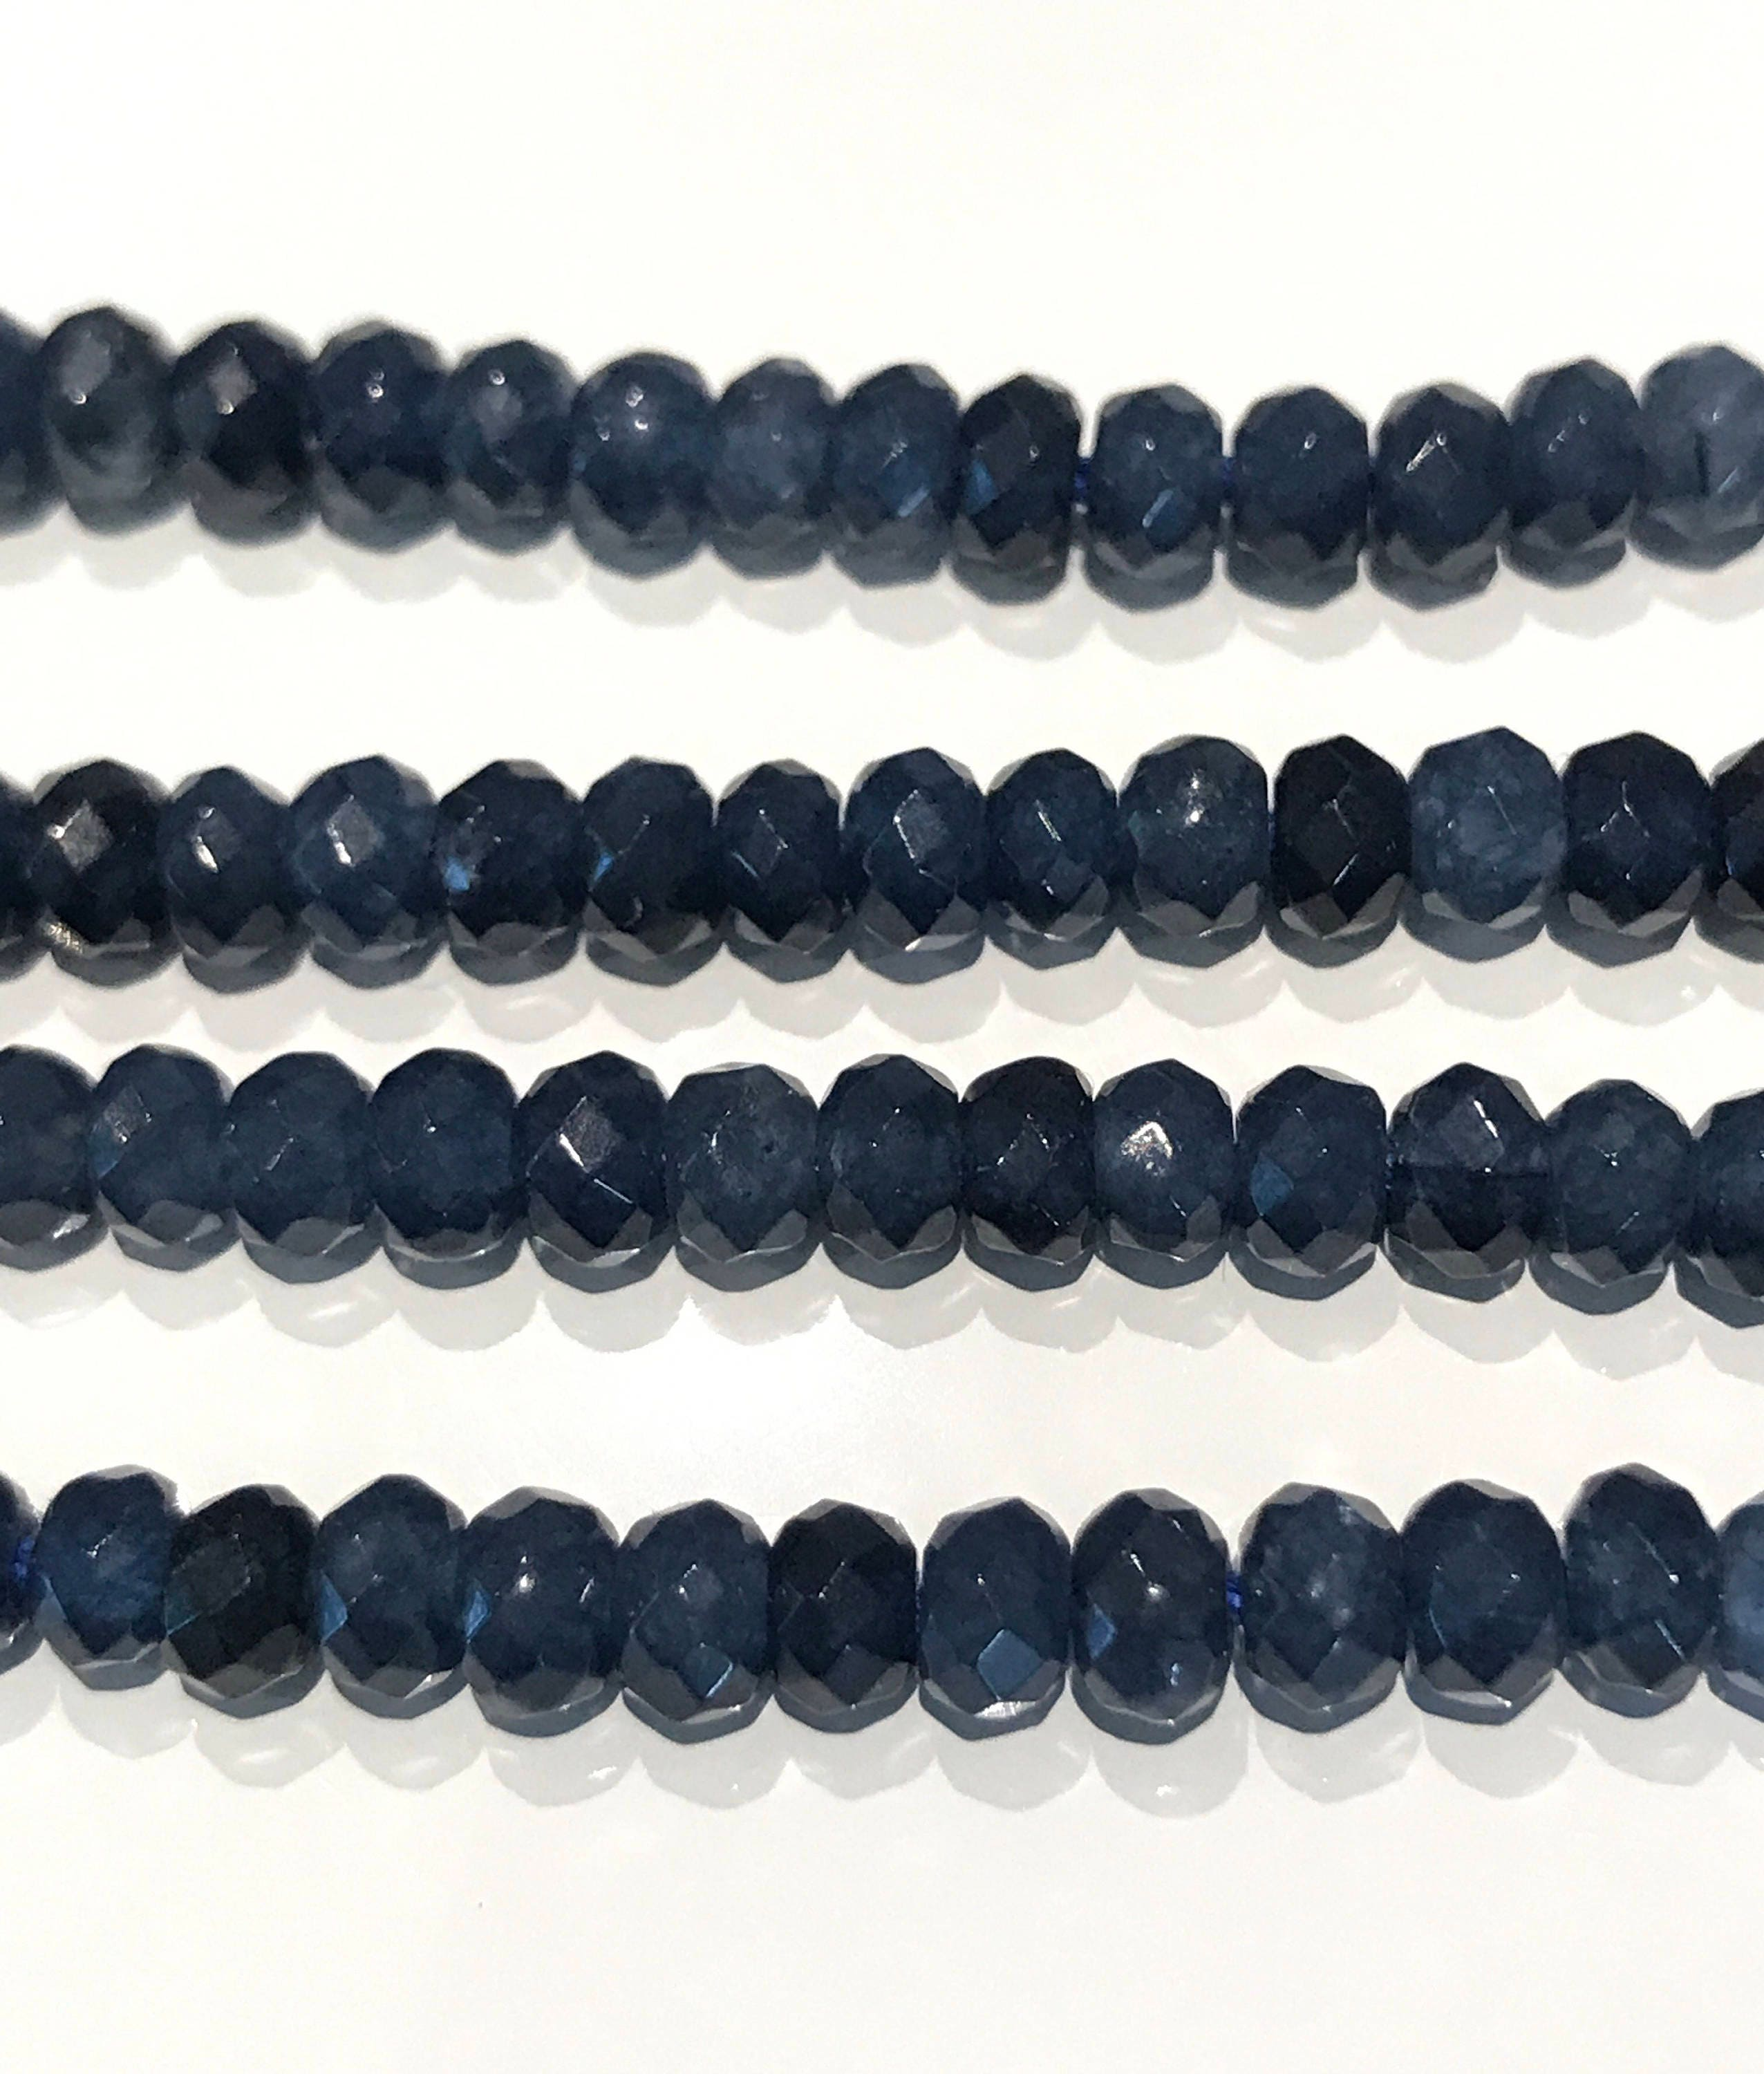 gemstone for sold listing beads il fullxfull akstarbeadsandcharms wholesale by jewelry lujj ruby making genuine